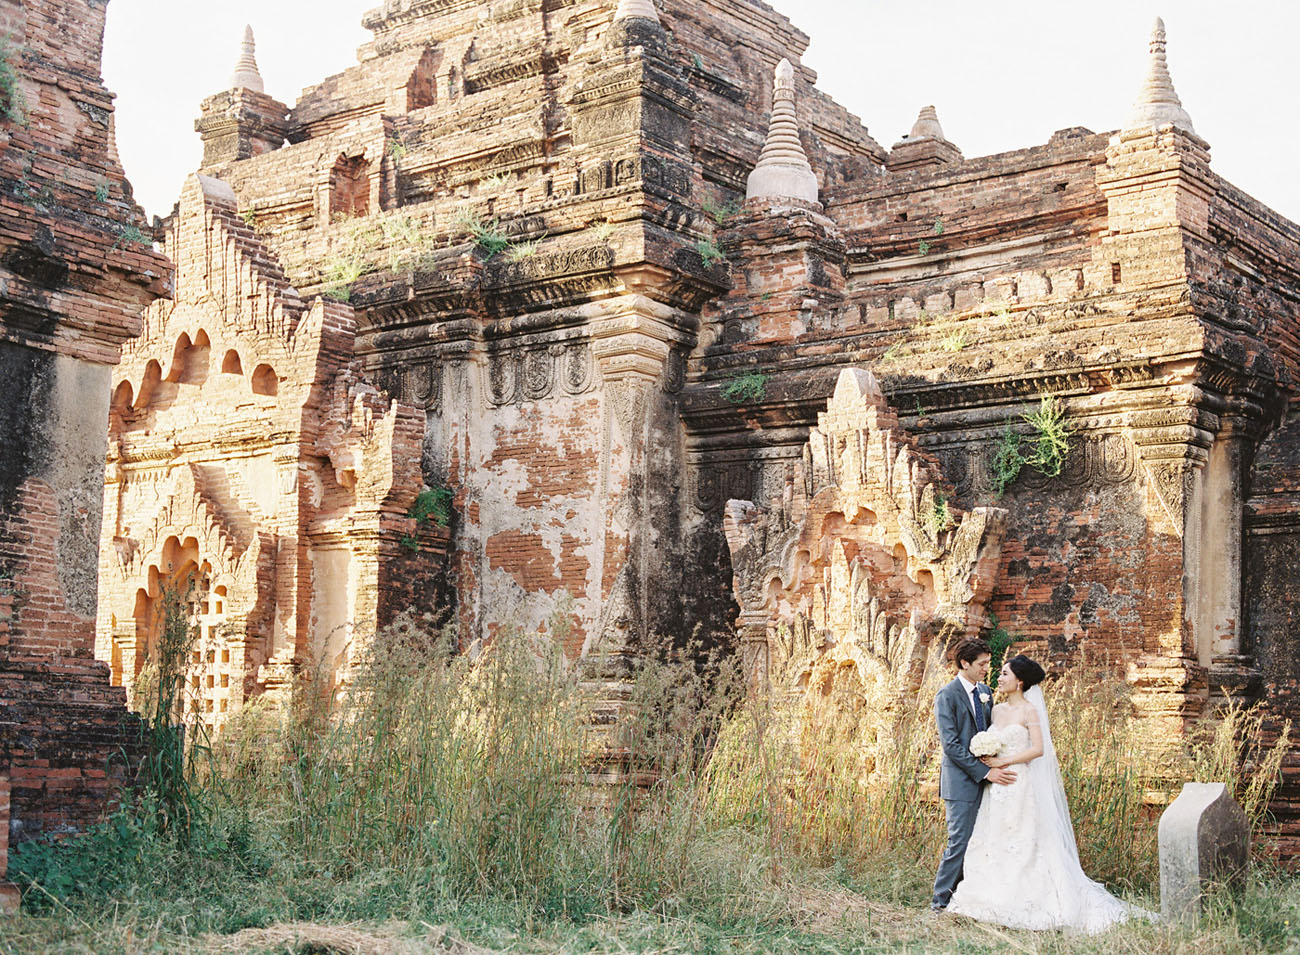 Myanmar Wedding